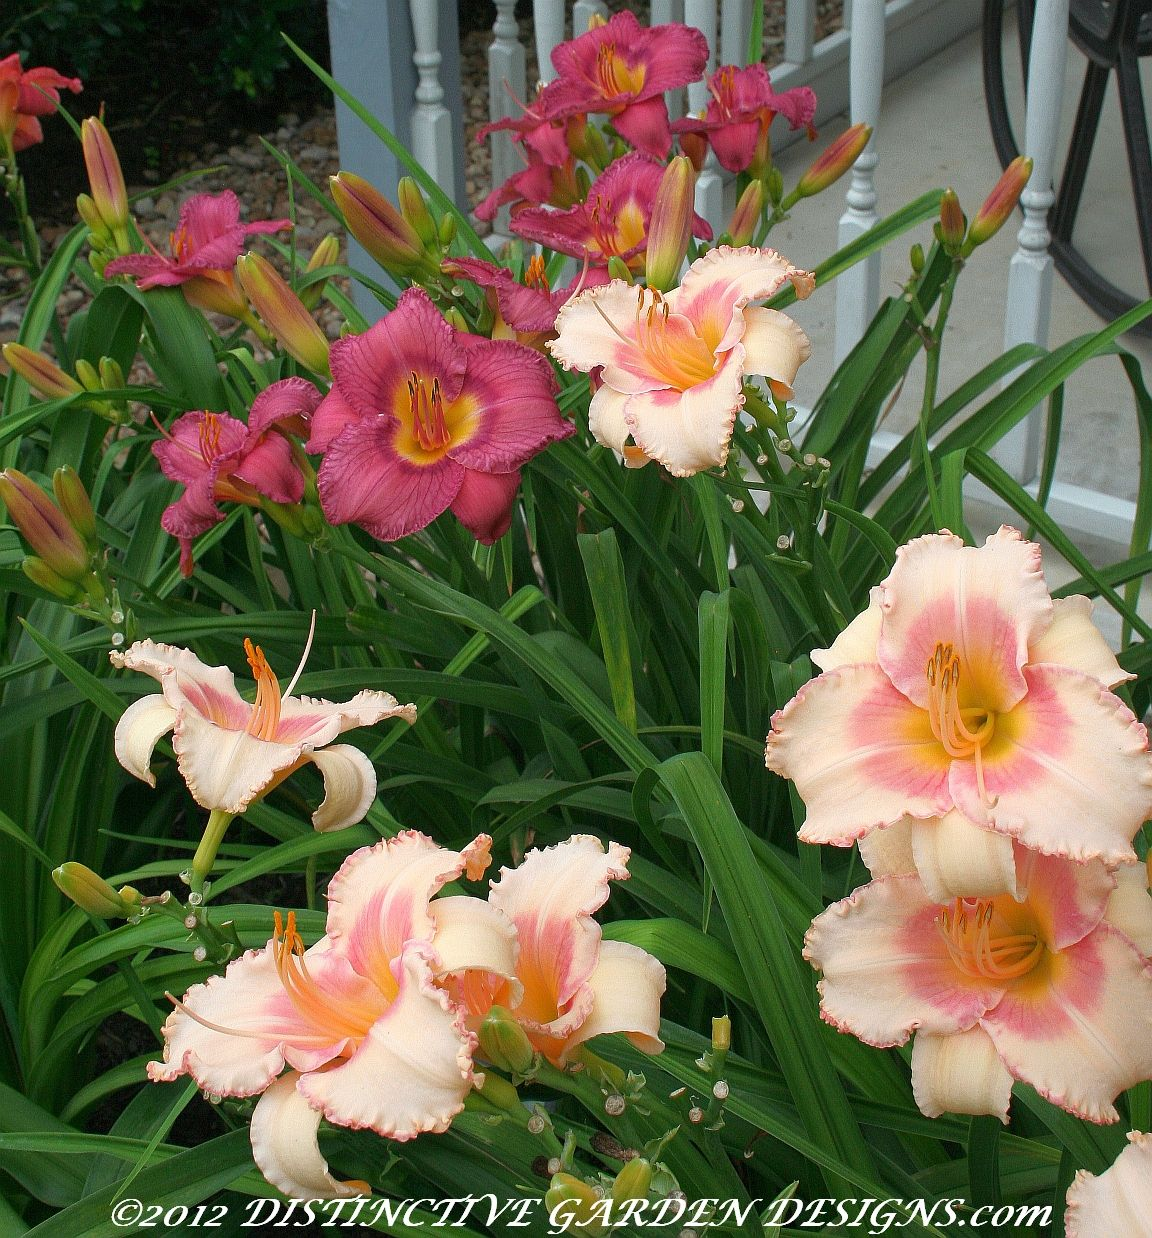 57 Amazing Beautiful Garden Ideas Inspiration And: Daylilies Hybridized By Jarvis, Texas